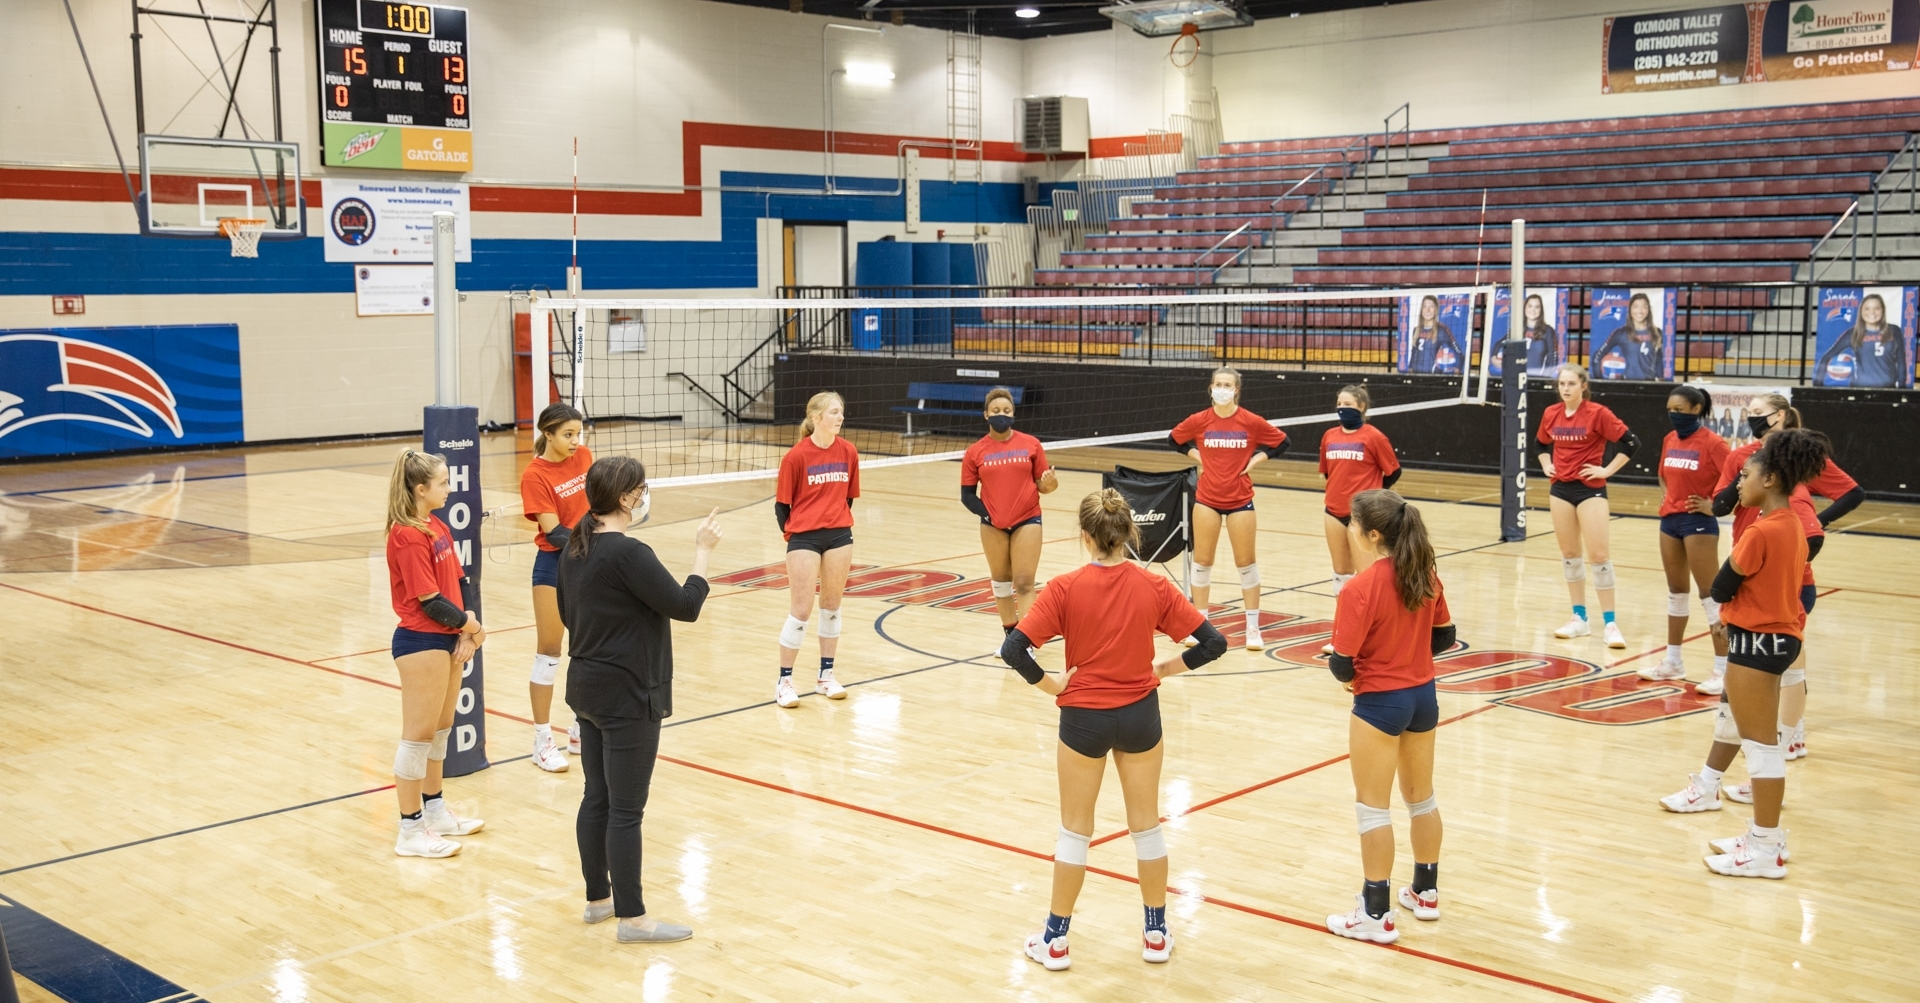 Inspirational stories to prepare you for the AHSAA volleyball championships on Oct. 27-29